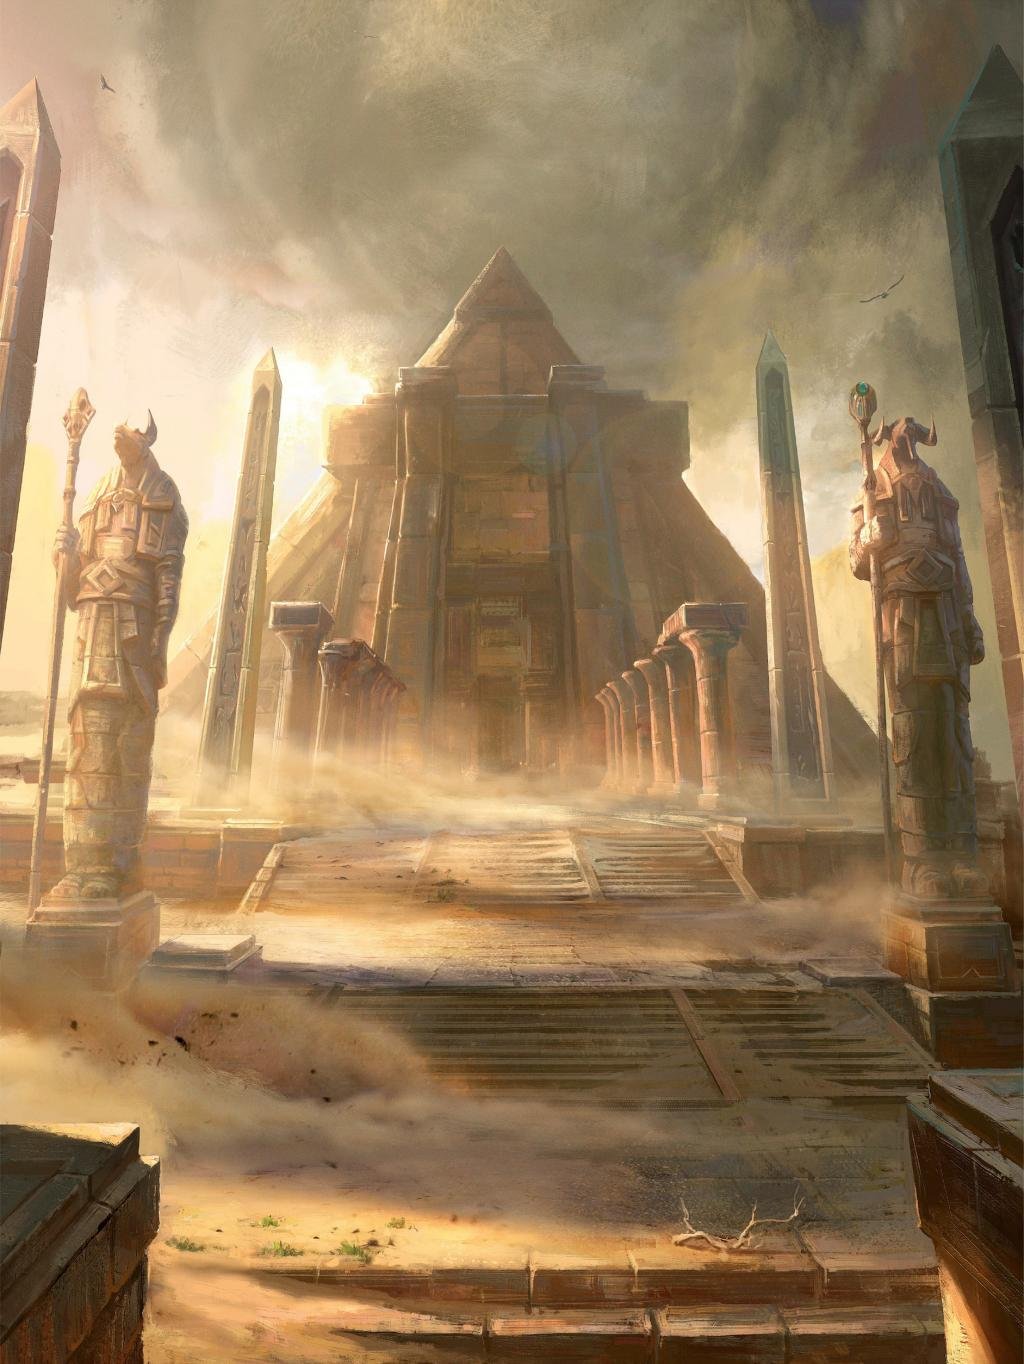 SetRatioSize10243000-The-Titan-Forged-Stronghold-of-Uldum-by-Peter-Lee.jpg